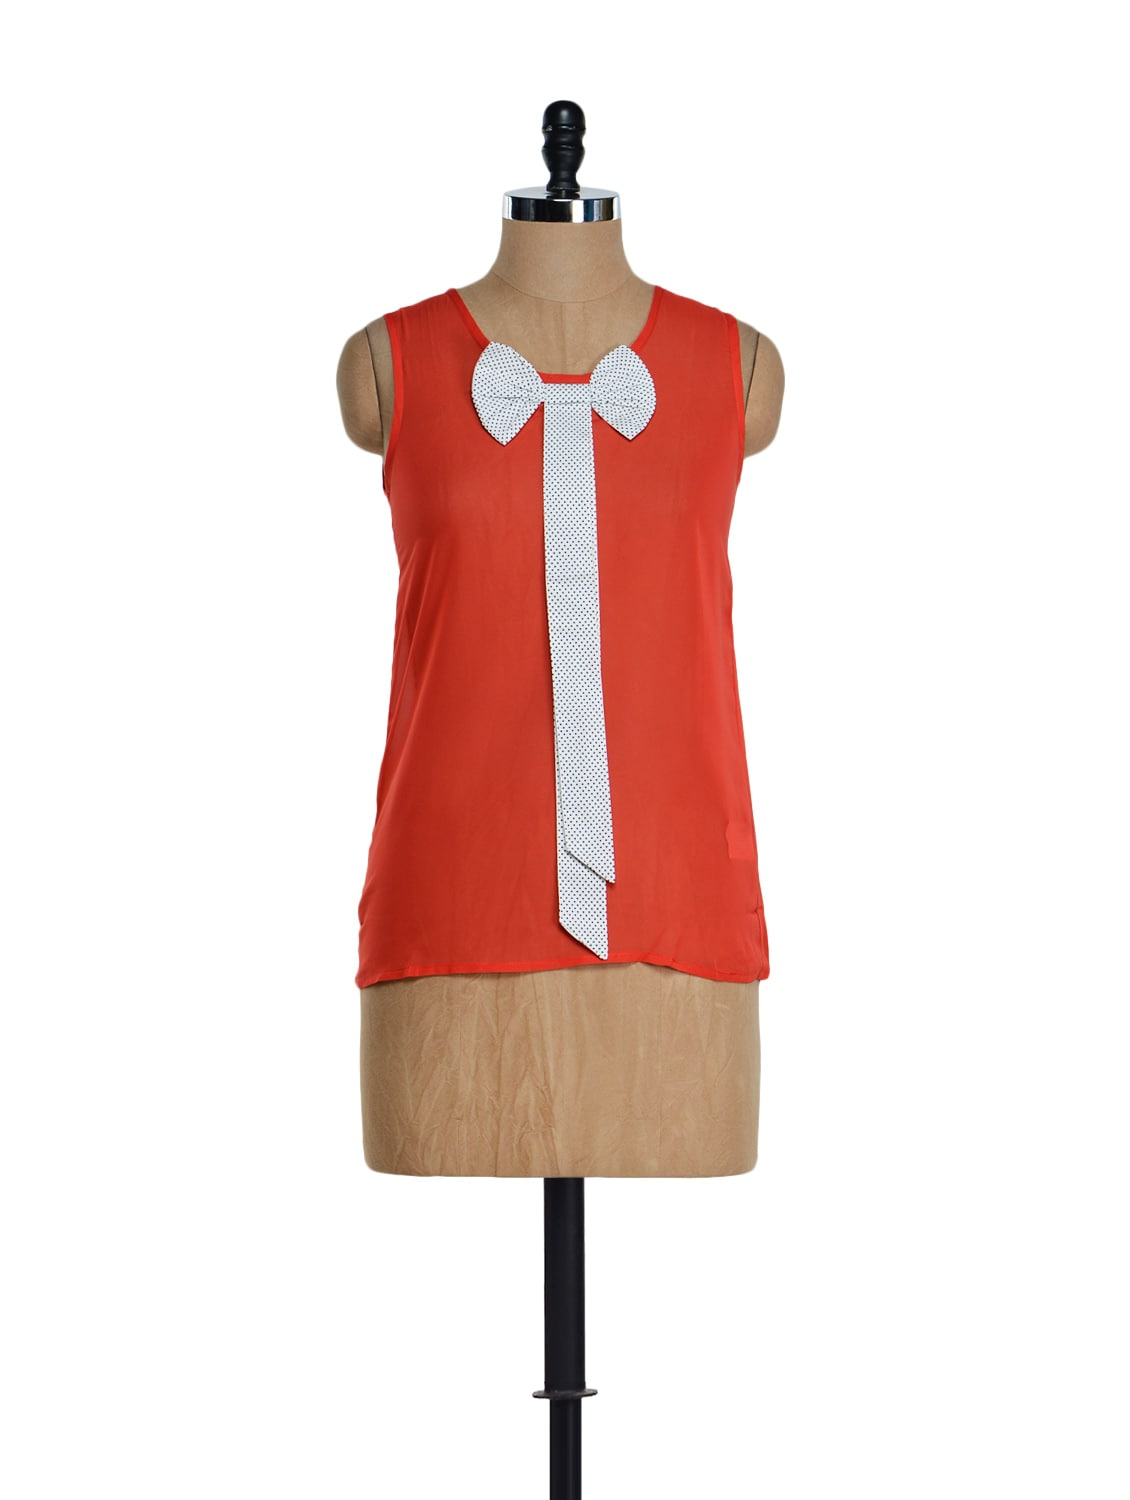 Sleeveless Red Bow Top - Golden Couture